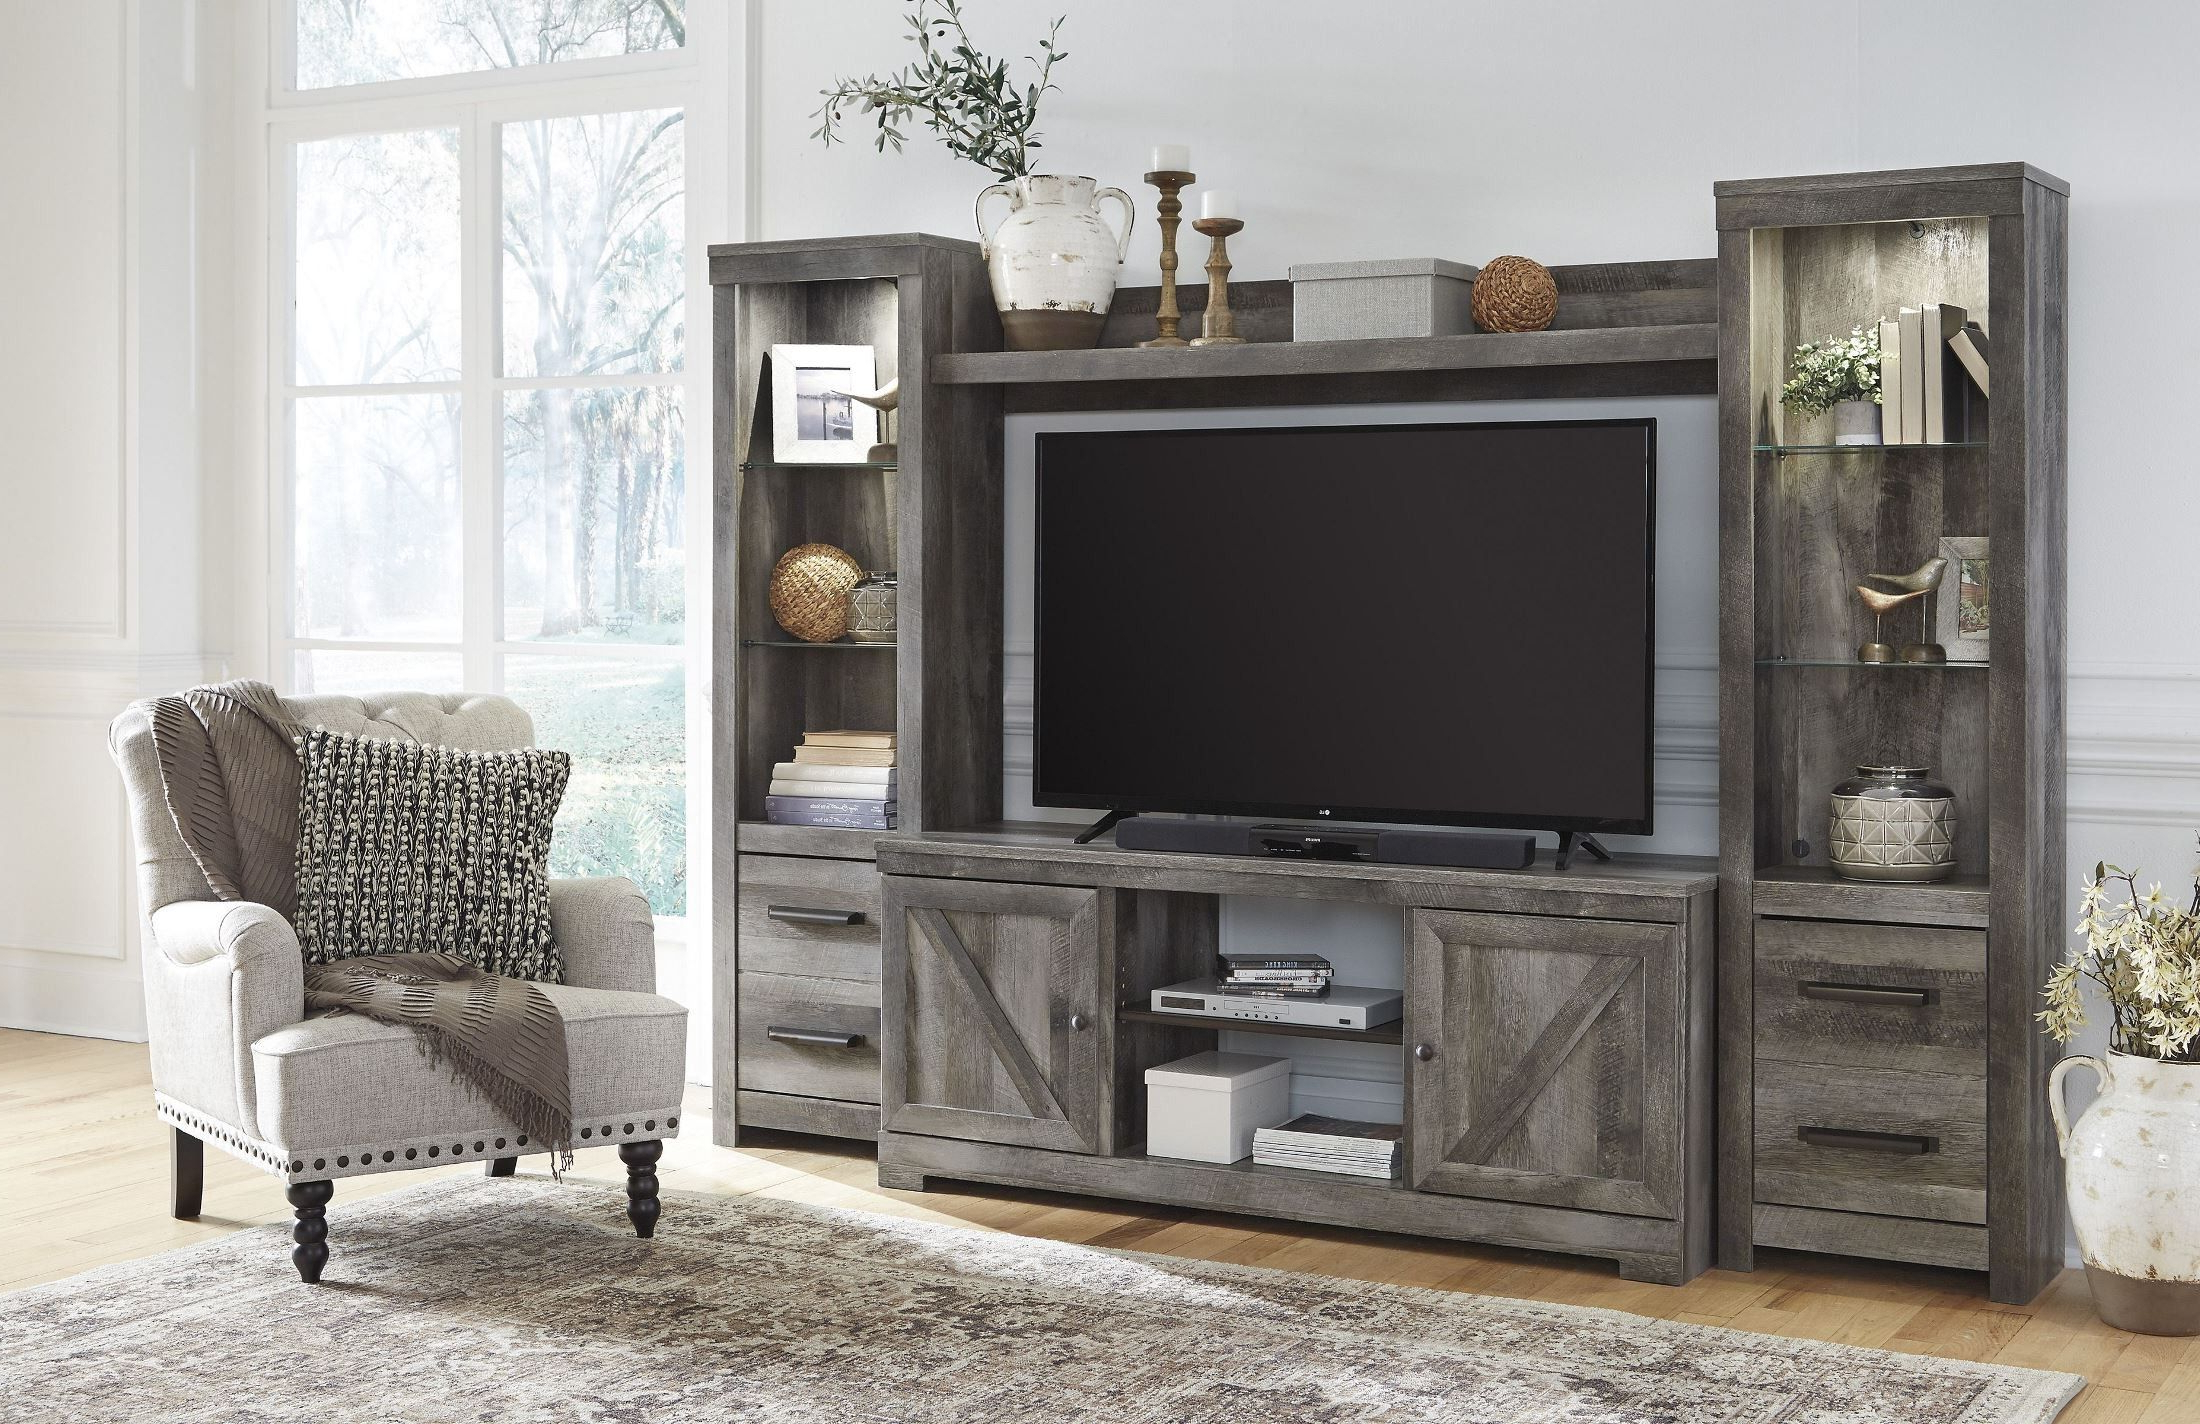 Wynnlow Gray Entertainment Wall Unit   Fireplace With Tv Stands In Rustic Gray Wash Entertainment Center For Living Room (View 12 of 20)